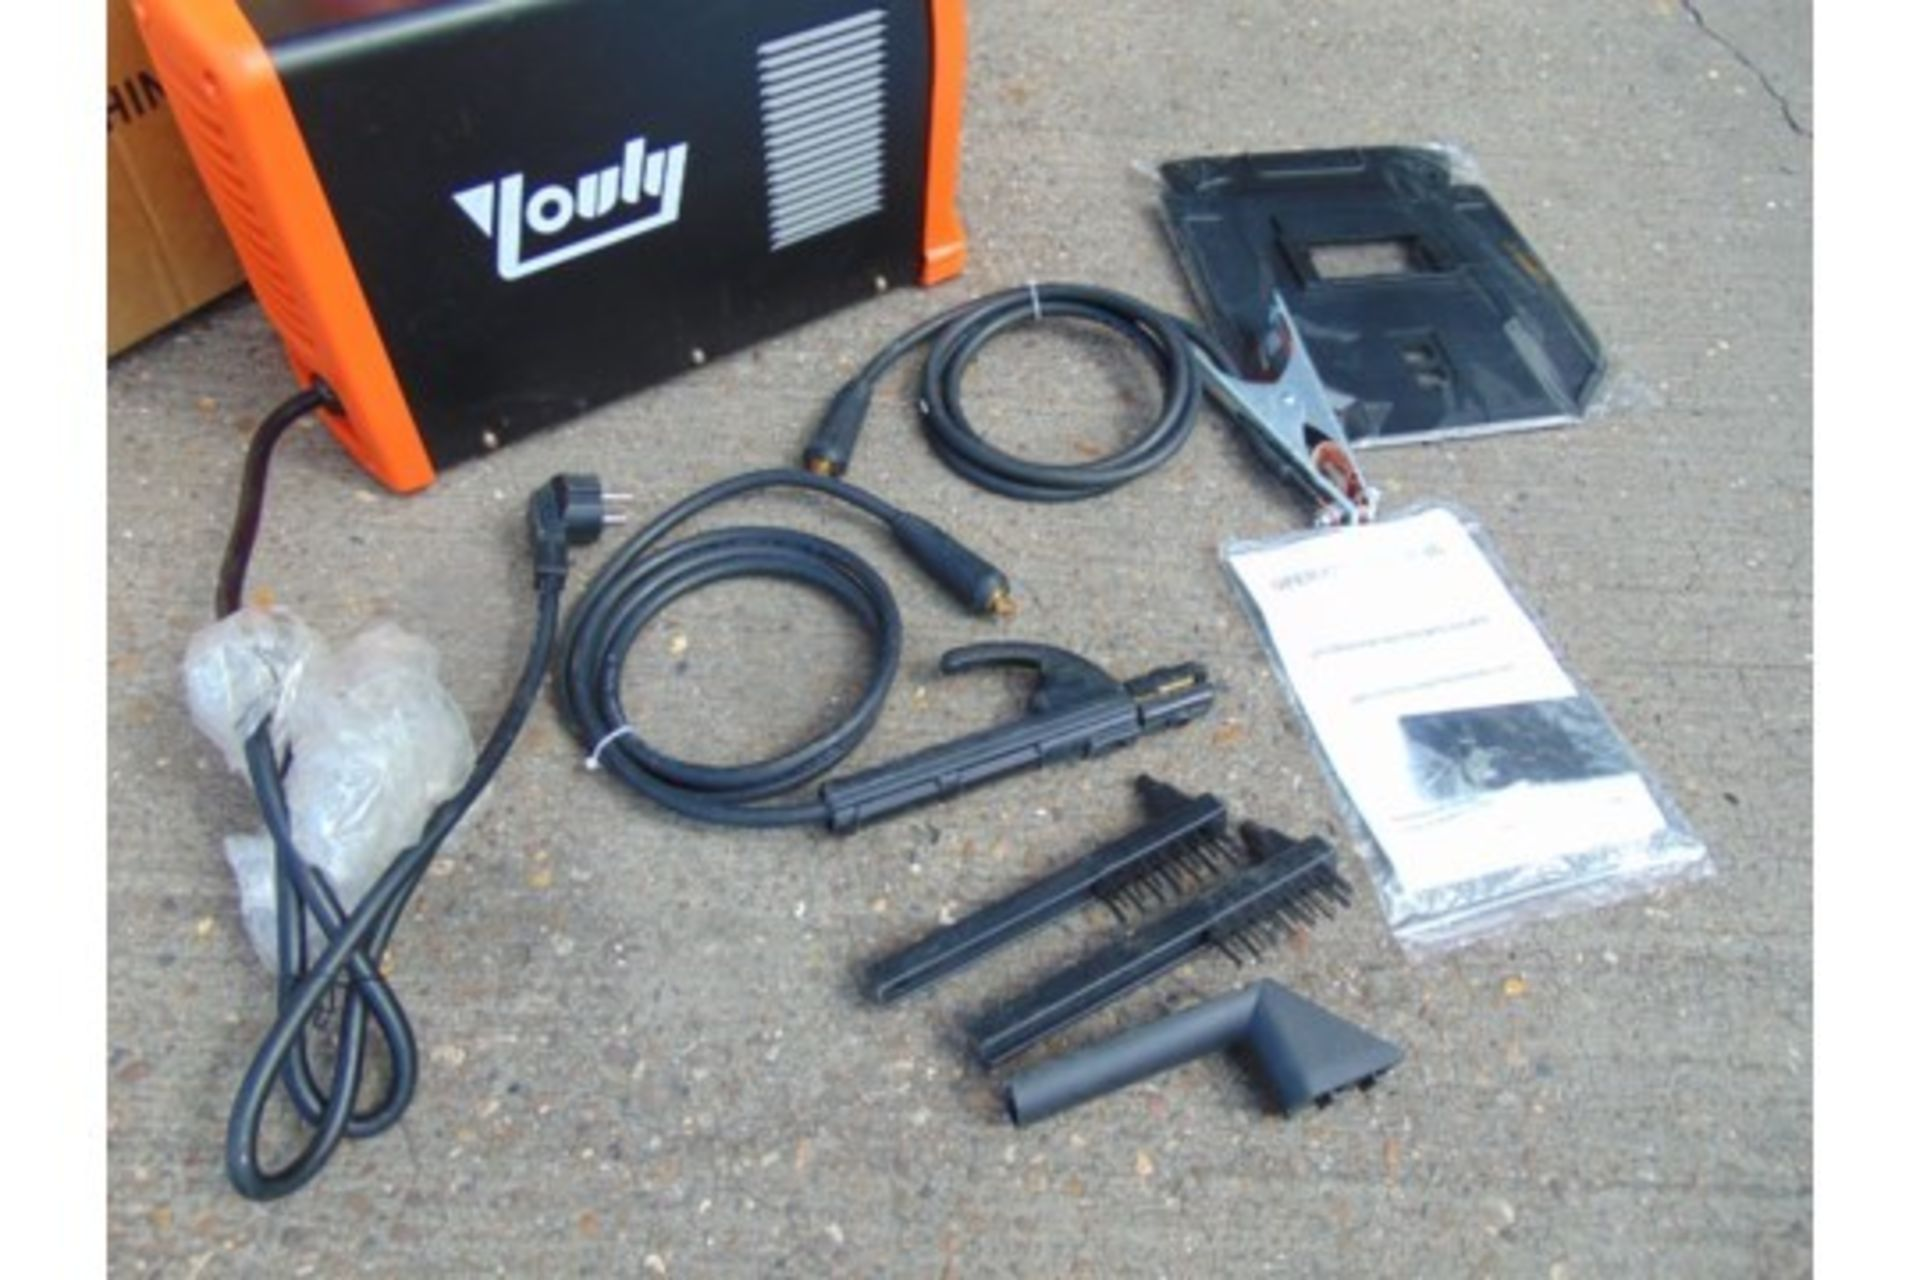 Lotto 25813 - ** BRAND NEW ** Youli MMA-250 QI Inverter Welder